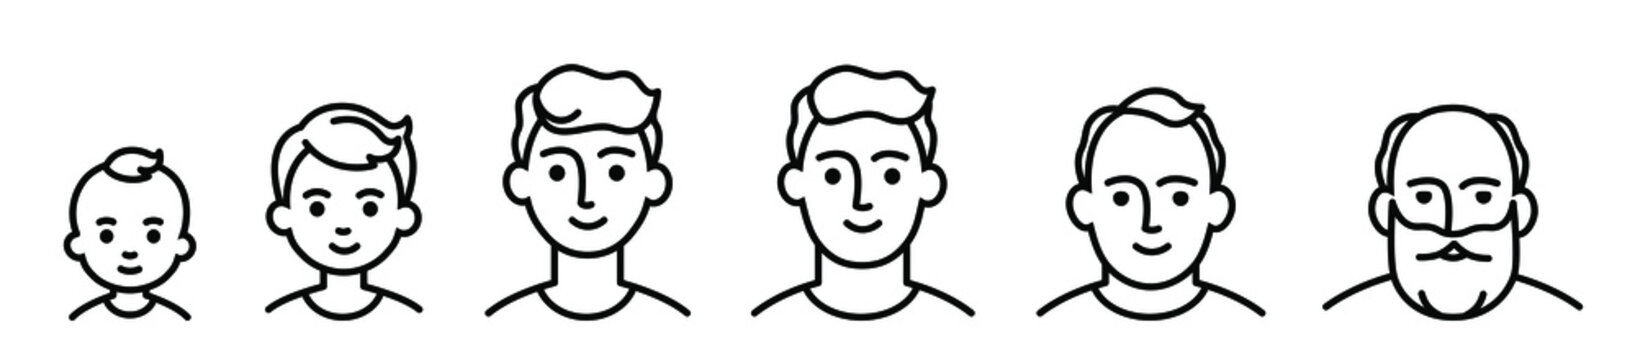 Portrait of a males at different ages, preschooler kid 1-5 years old, primary school age 6-9, senior school age 10-14, 15-18, young man 19-30, average 40-50, elderly 60-80. black and white icon